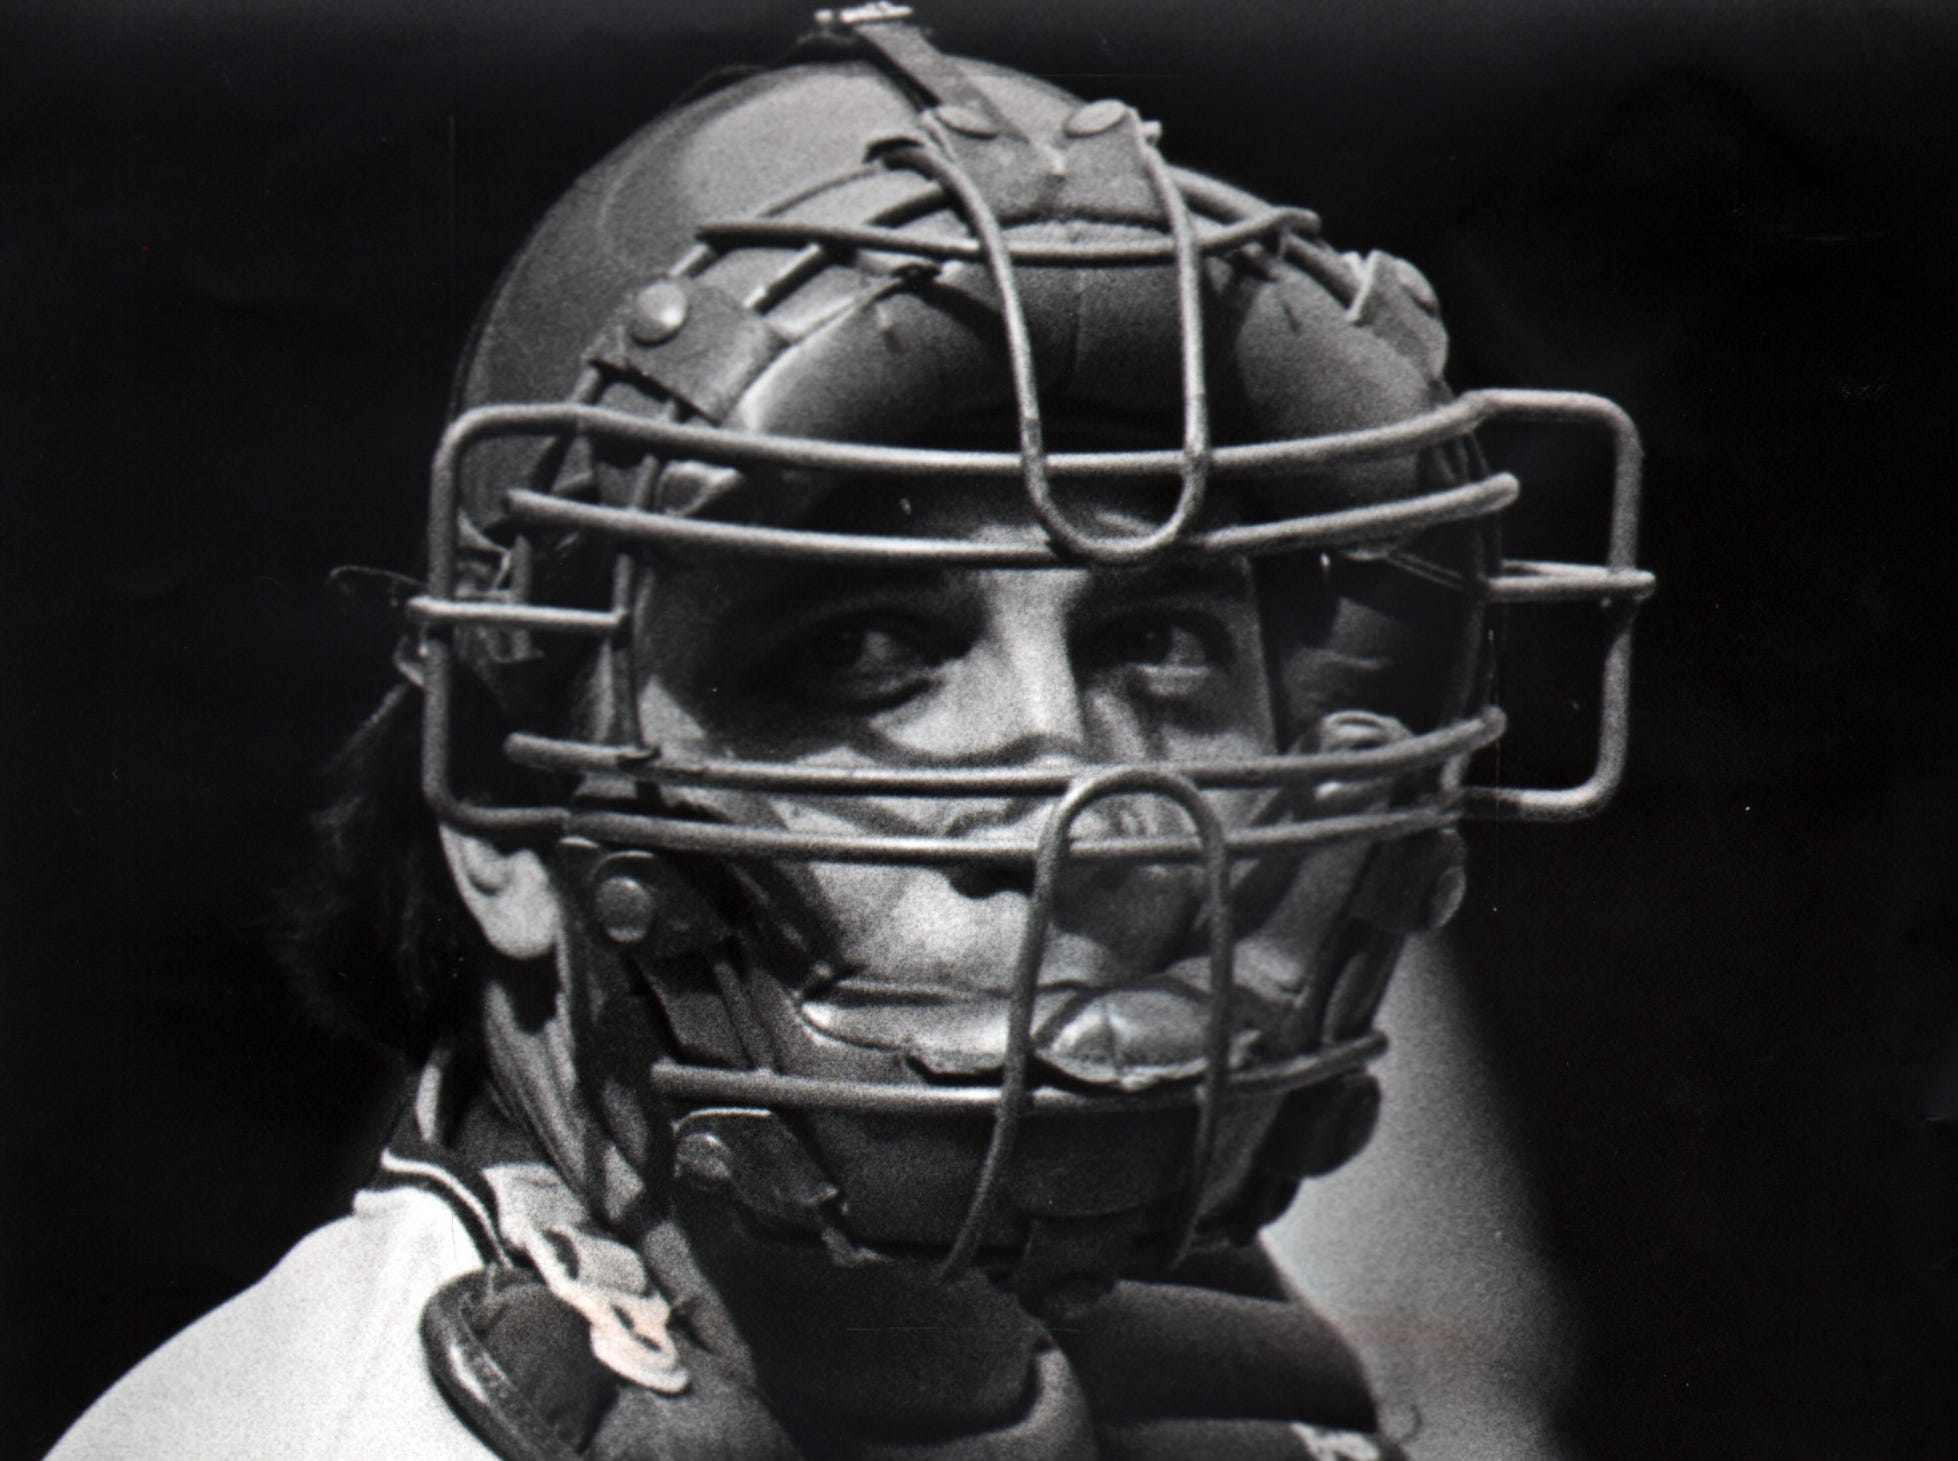 OCTOBER 5, 1980: Johnny Bench, Cincinnati Reds Johnny Bench wore the catcher's mask for the Reds on October 5, 1980, when they defeated the Atlanta Braves, 1-0. Will he ever wear it again? Bench has called a press conference for today, 11/18/80, presumably to discuss whether his unifrom will come off its hanger in 1981. The Enquirer/Michael E. Keating scanned February 16, 2010